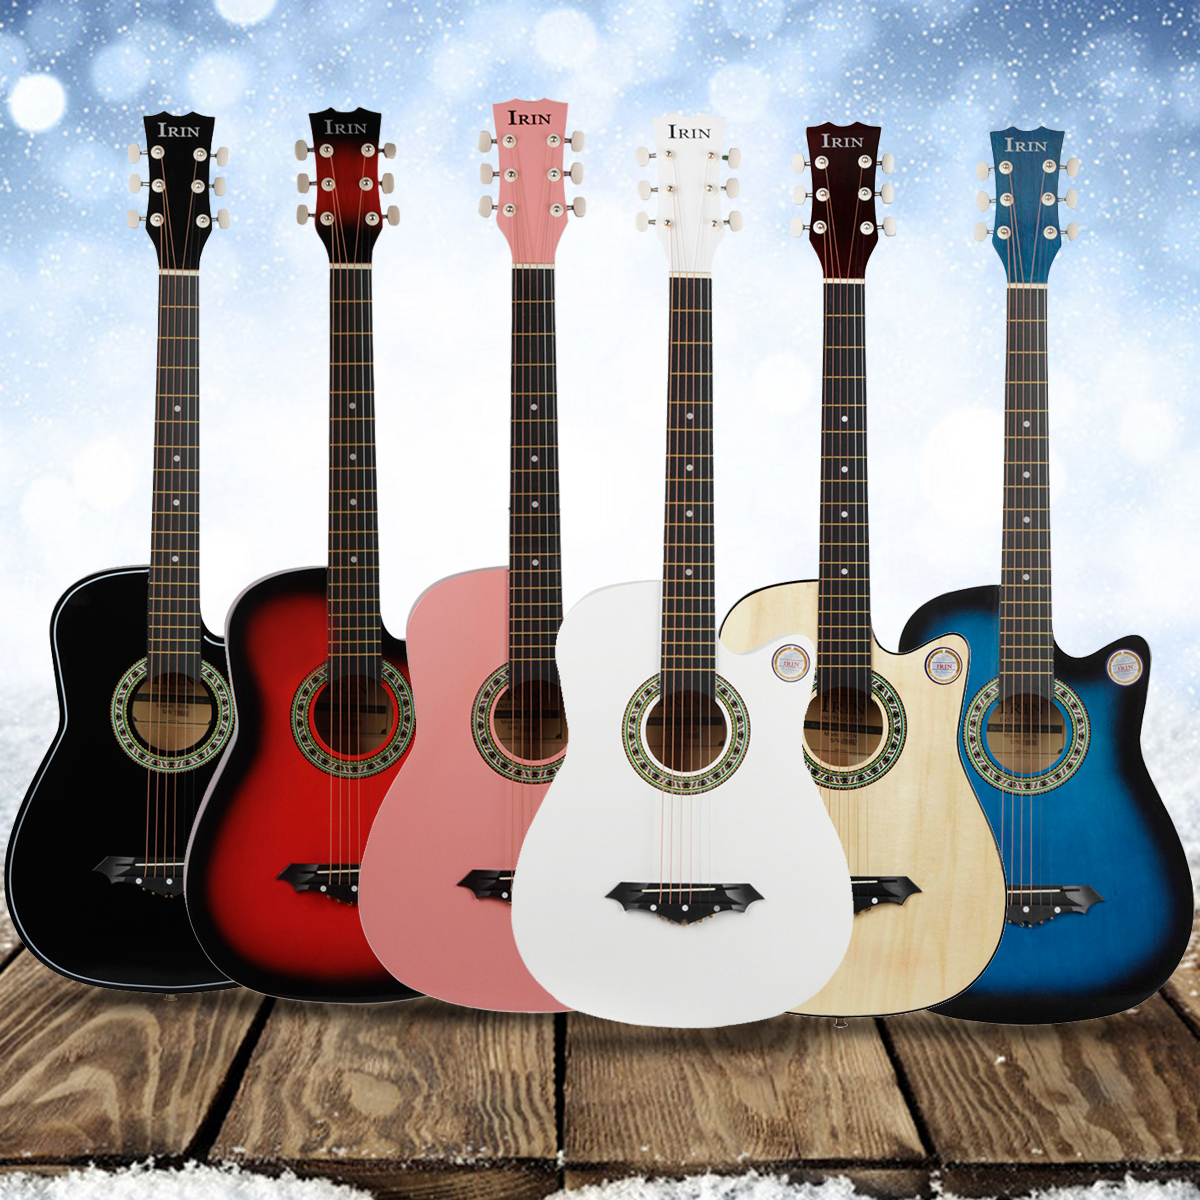 IRIN 38 Inch Guitar Acoustic Guitar Acoustic Beginners Getting Started Practicing Stringed Instruments Guitar цена